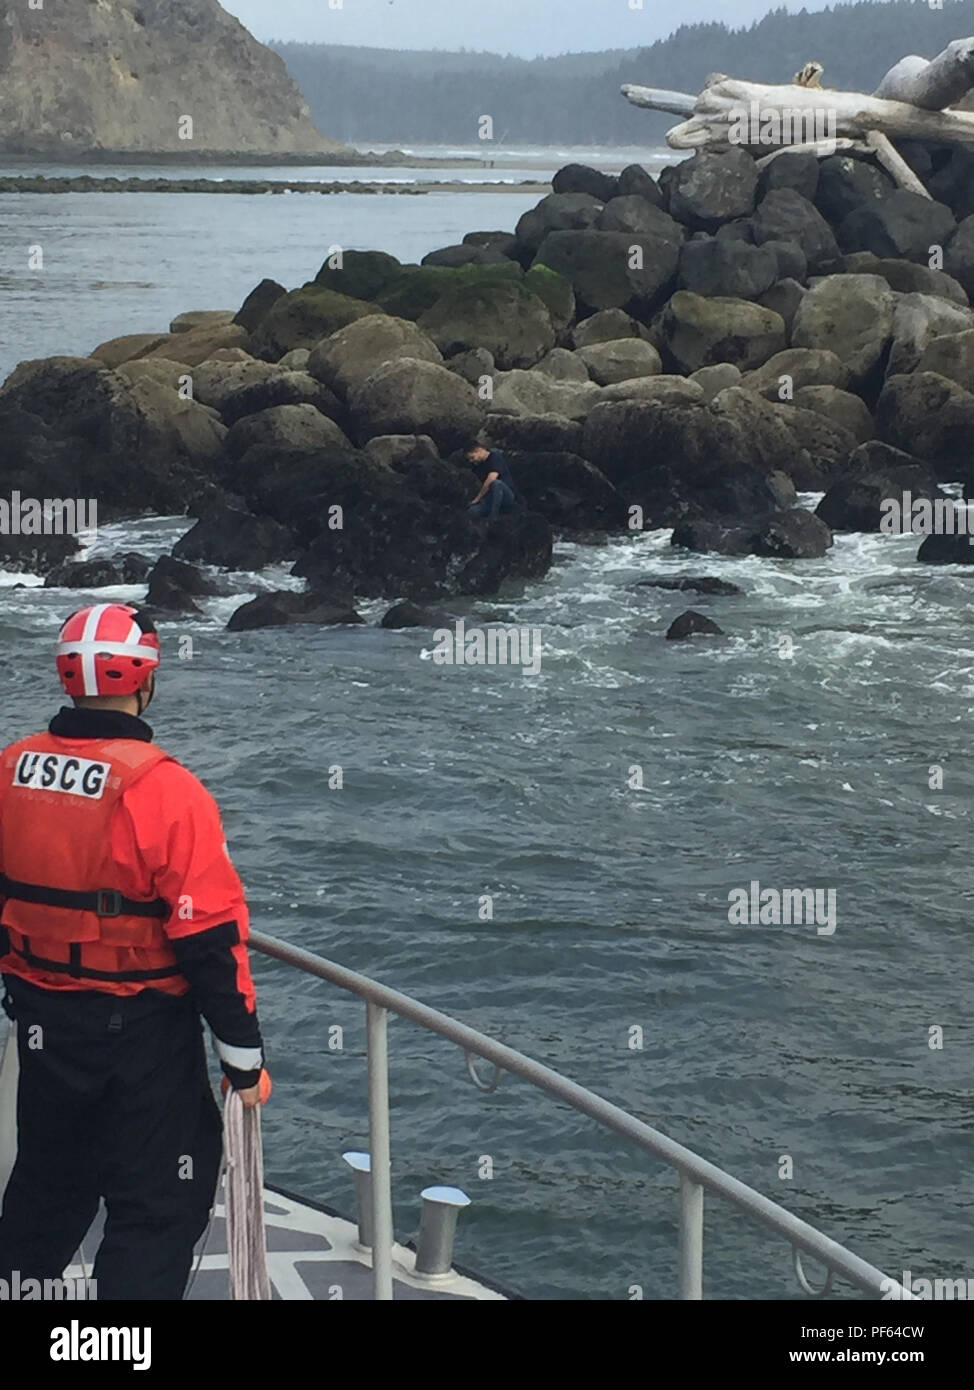 An injured swimmer sits on rocks as a Coast Guard boat crew aboard a 47-foot Motor Life Boat approaches his location to rescue him near La Push, Wash., Aug. 16, 2018.    The swimmer suffered lacerations on his arms and received medical assistance.    U.S. Coast Guard photo by Petty Officer 1st Class Louis Keating. - Stock Image